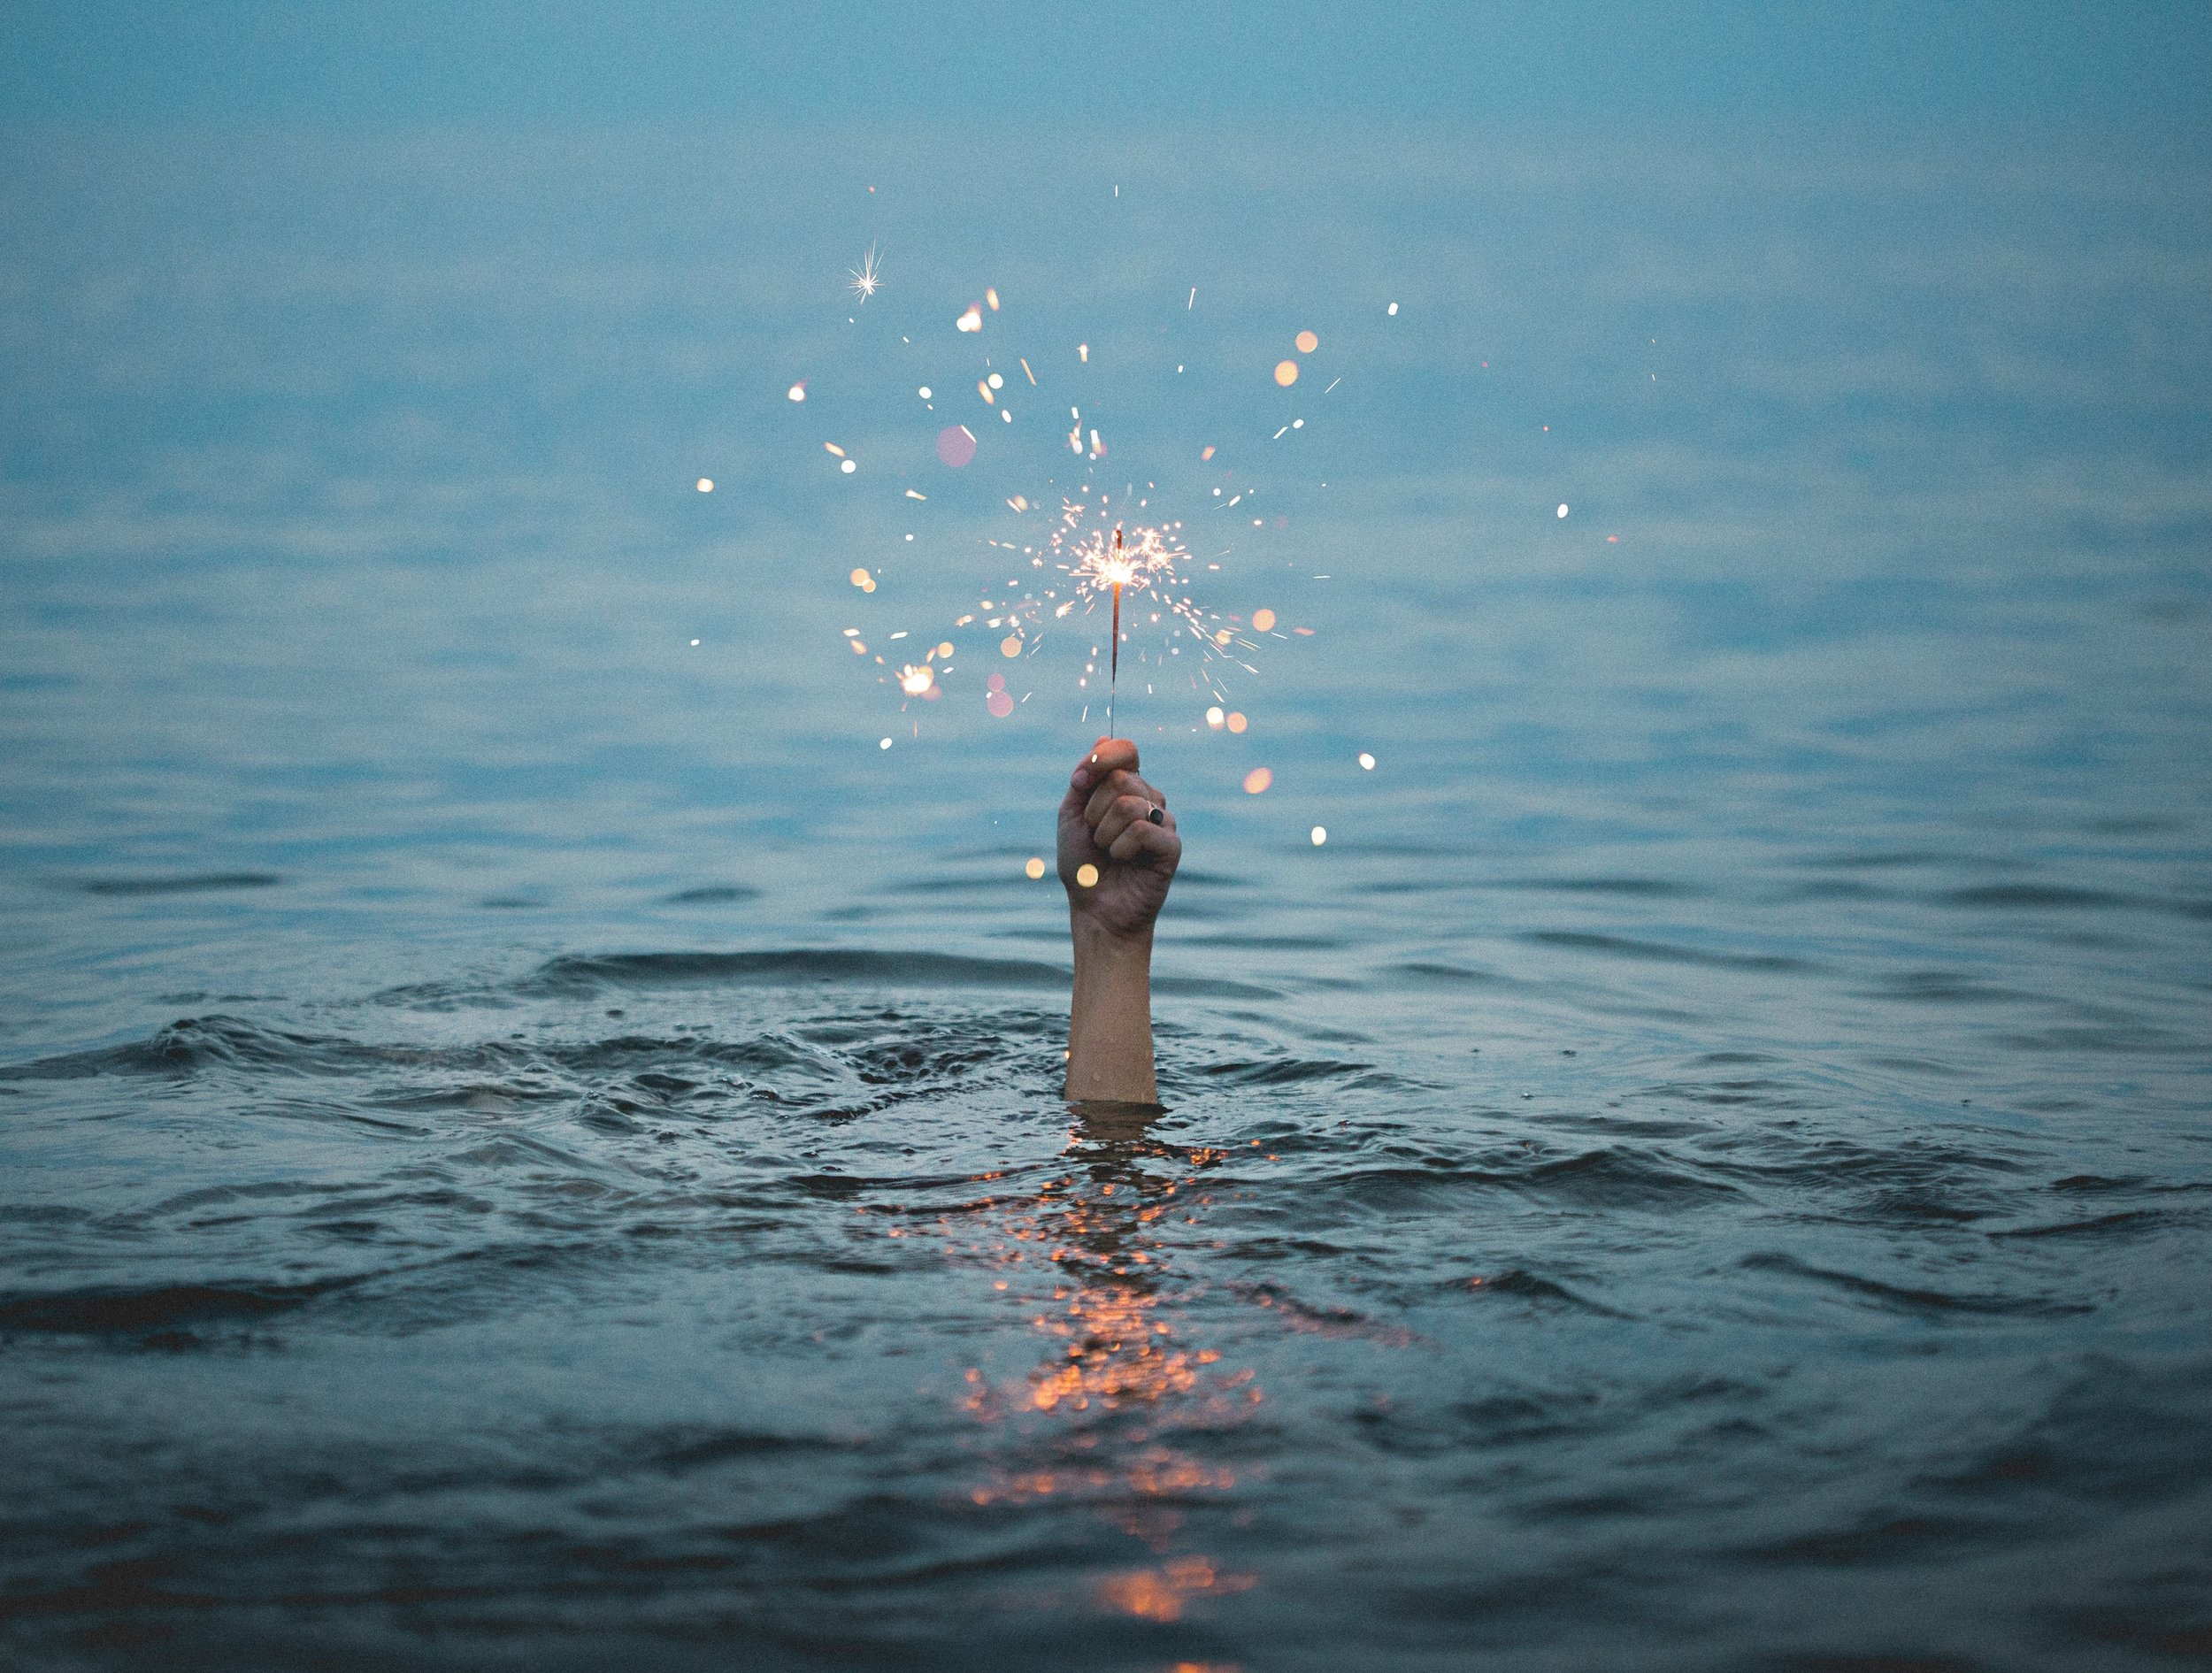 [Image description: An arm reaches from below a surface of water holding a lit sparkler.]